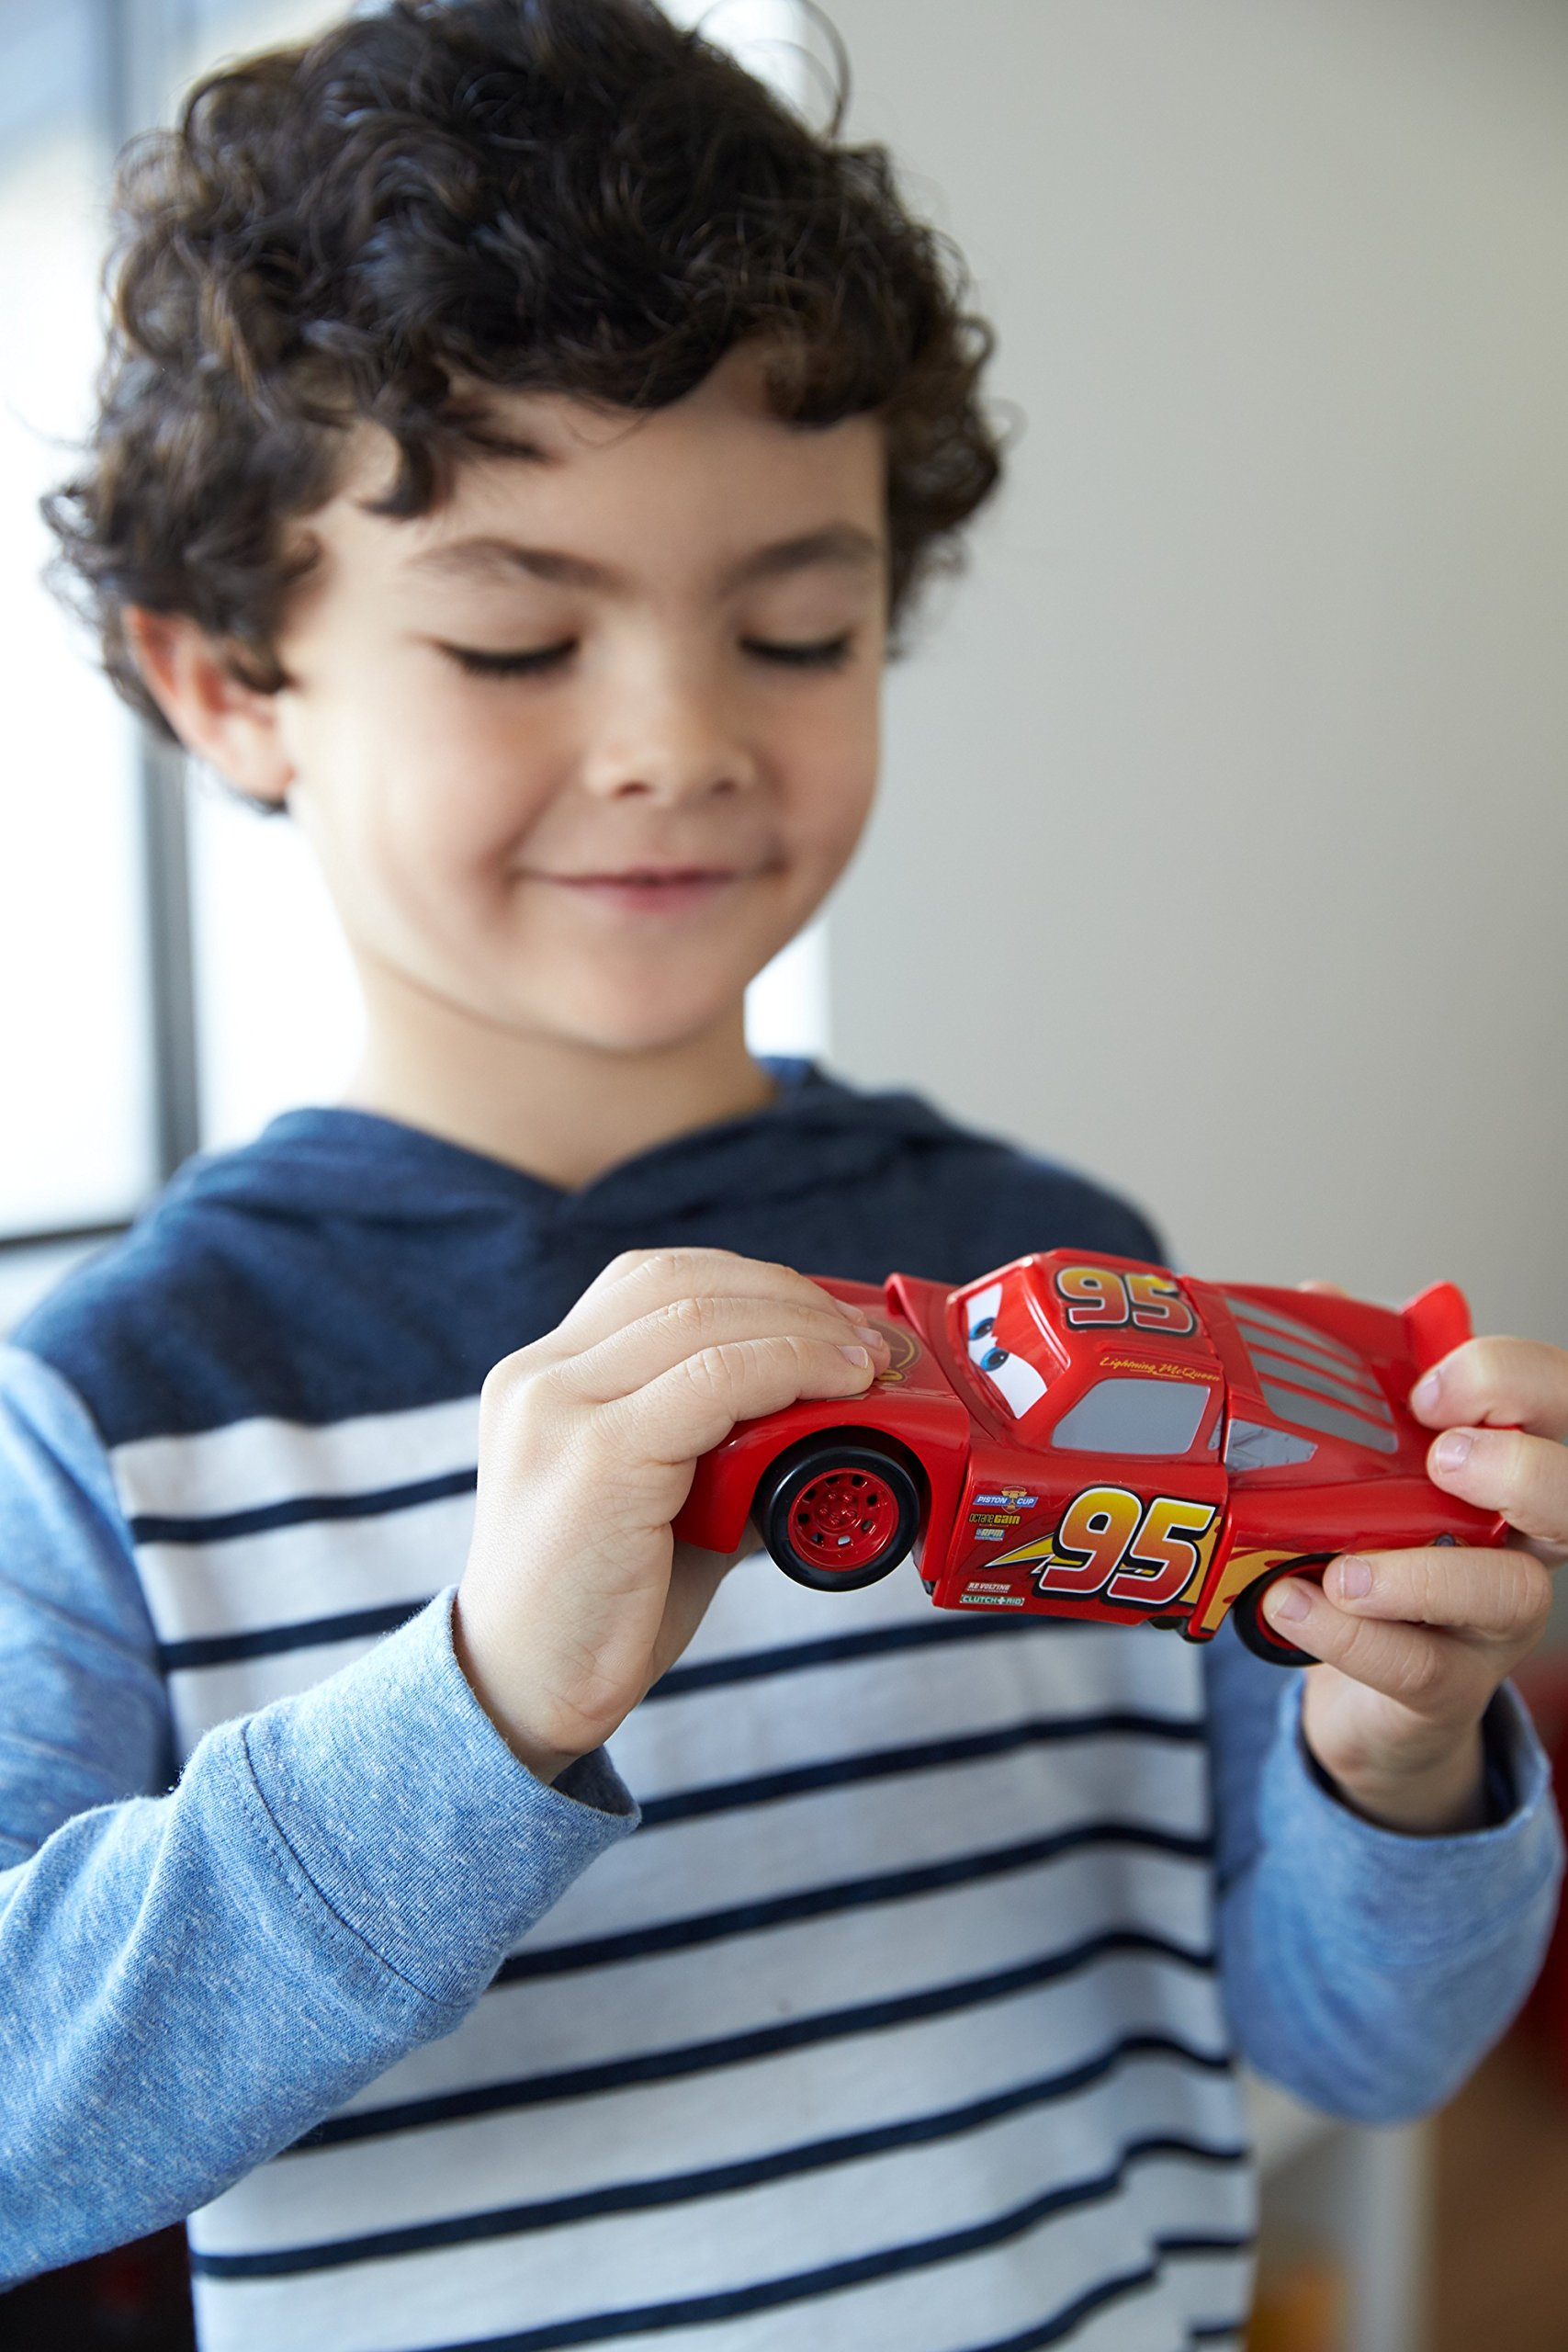 Disney DYW39 Pixar Cars 3 Race and Reck Lightning McQueen Vehicle Disney New Disney Pixar Cars 3 Twisted Crashers vehicle.  His body twists and his eyes change after the crash!  Restore him to his former; pre smash glory by simply twisting the car back into place! 2